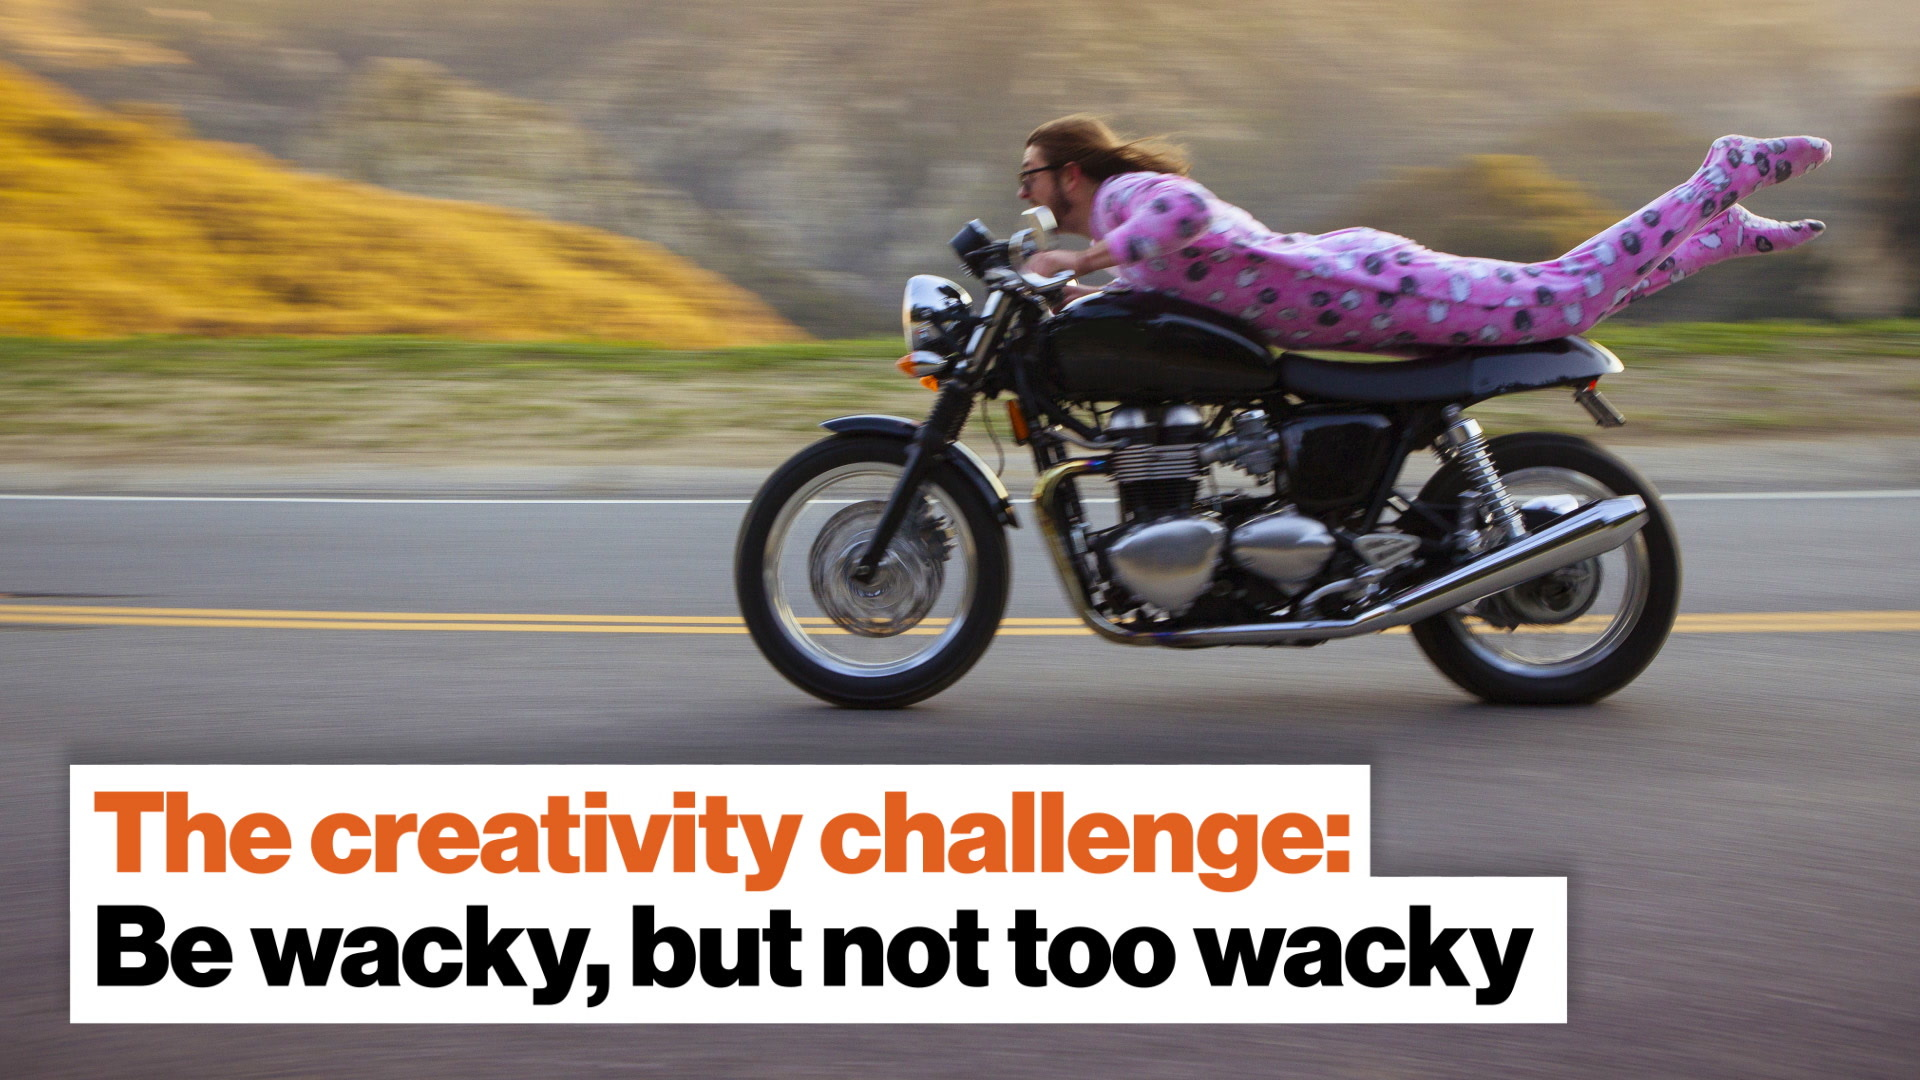 Find new inspiration with these time-tested approaches to creativity